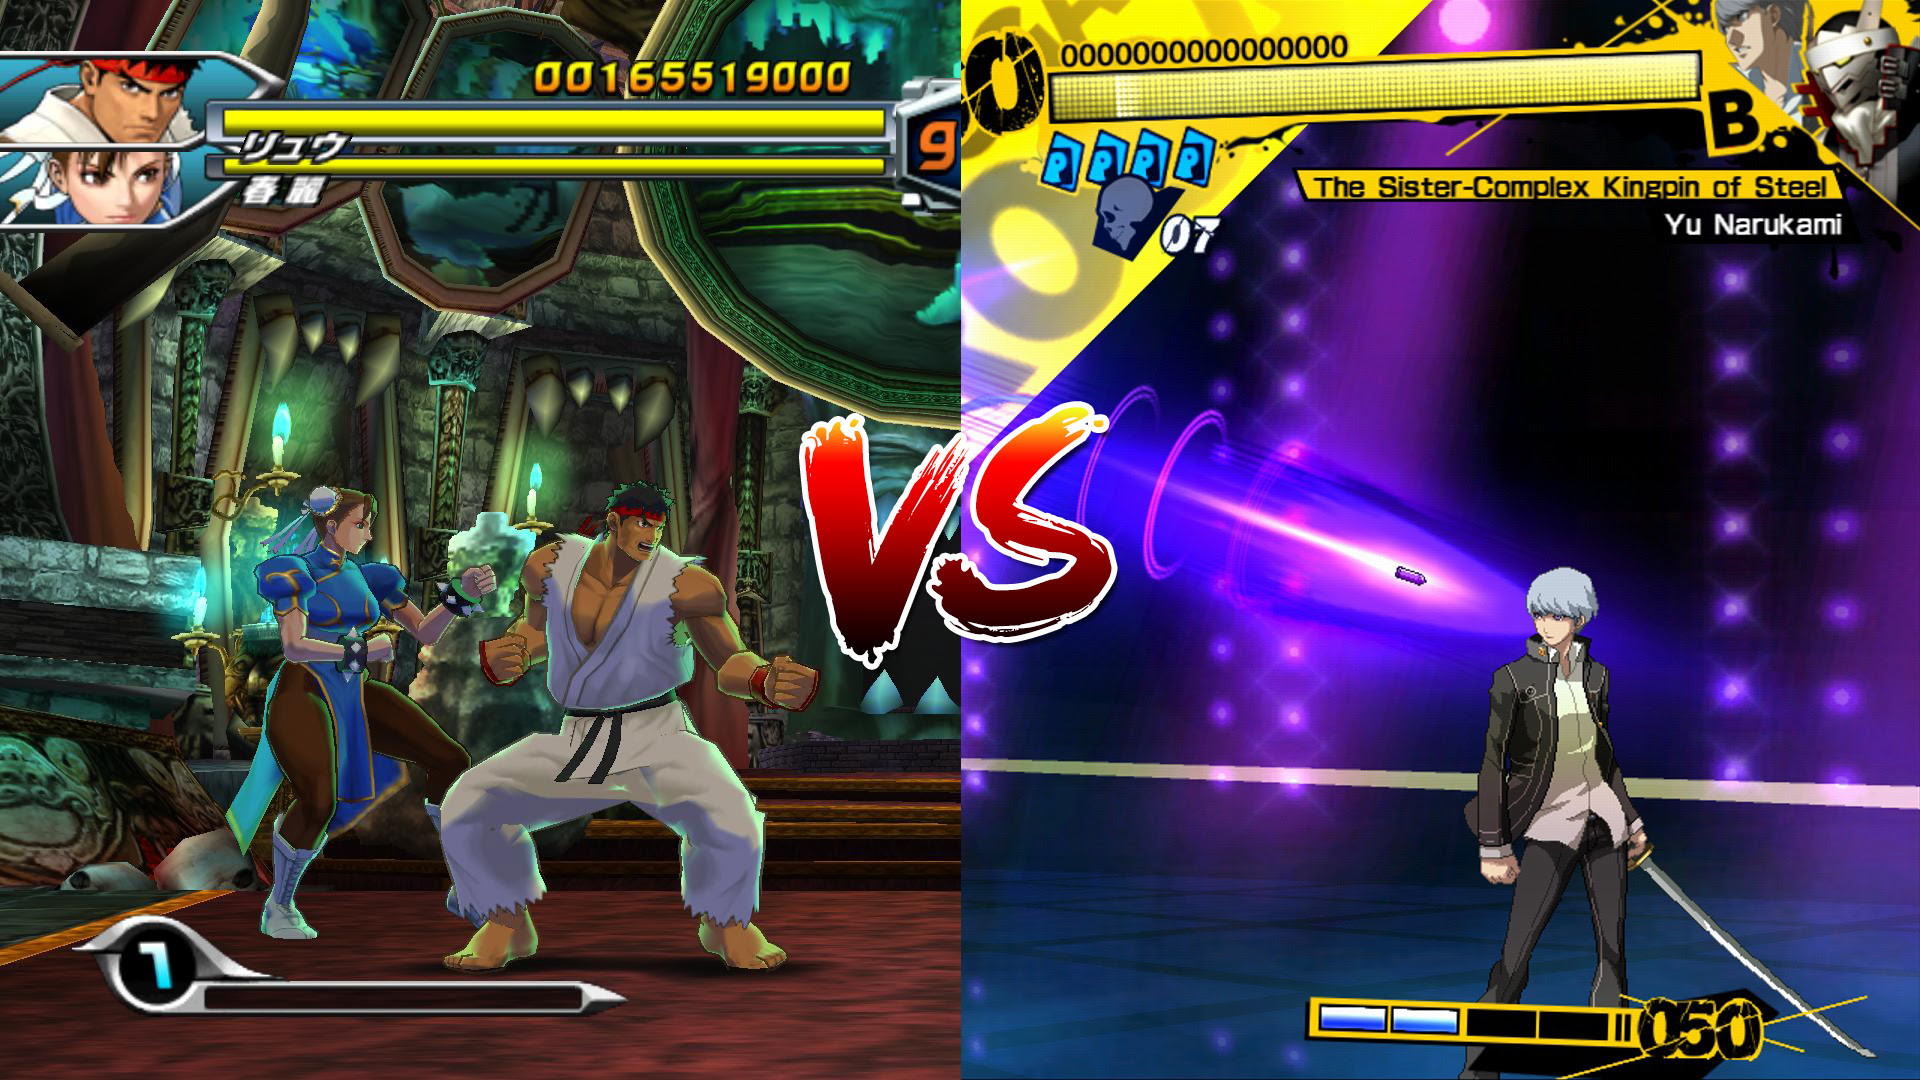 Atlus vs. Capcom is a thing that needs to happen screenshot